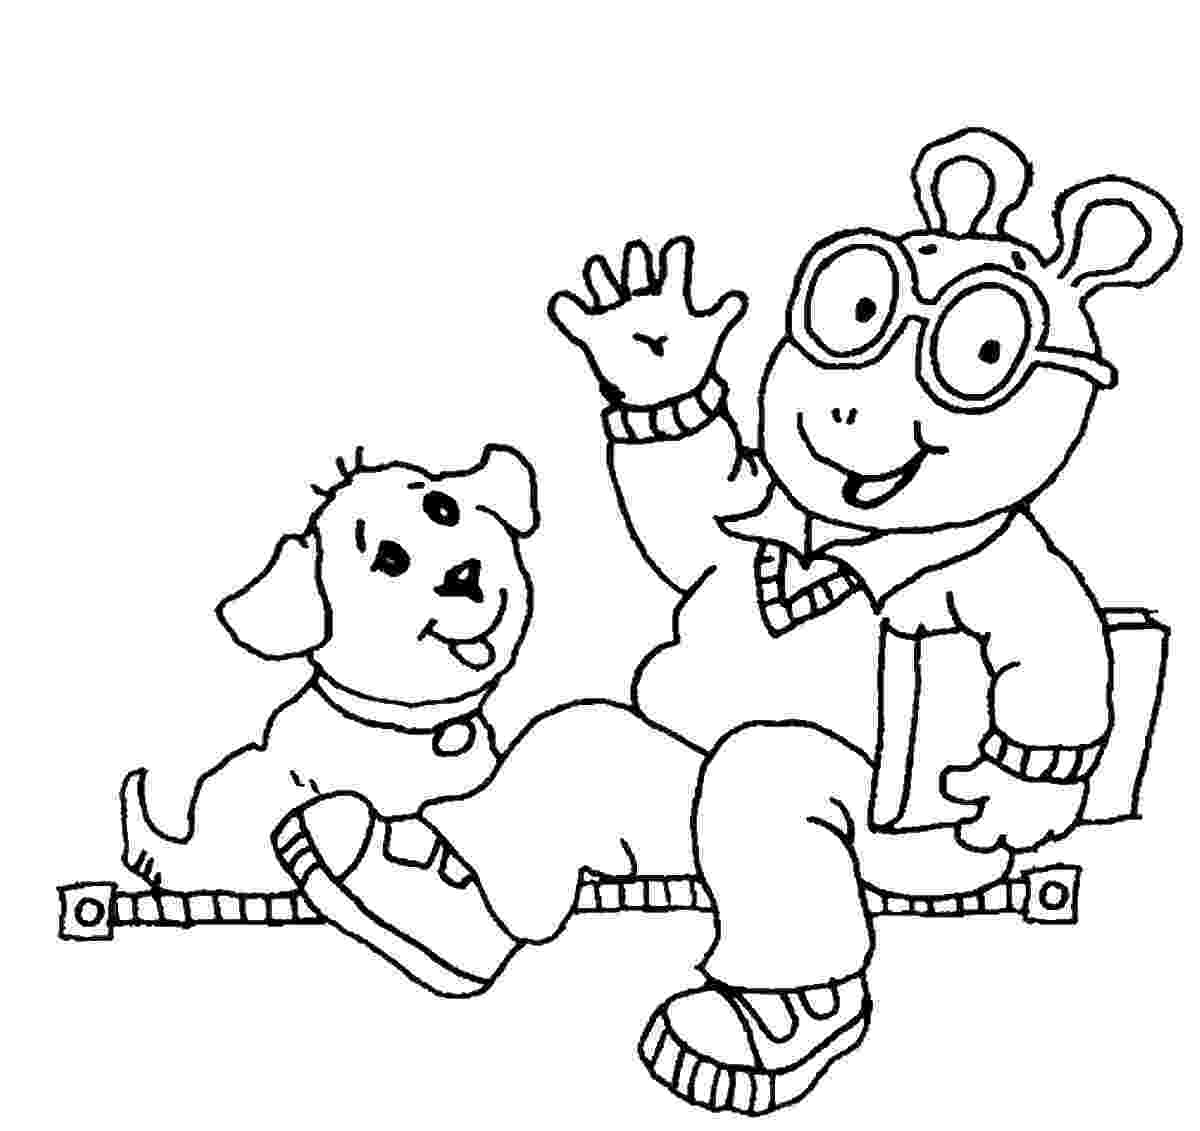 arthur coloring pages free printable arthur coloring pages for kids arthur pages coloring